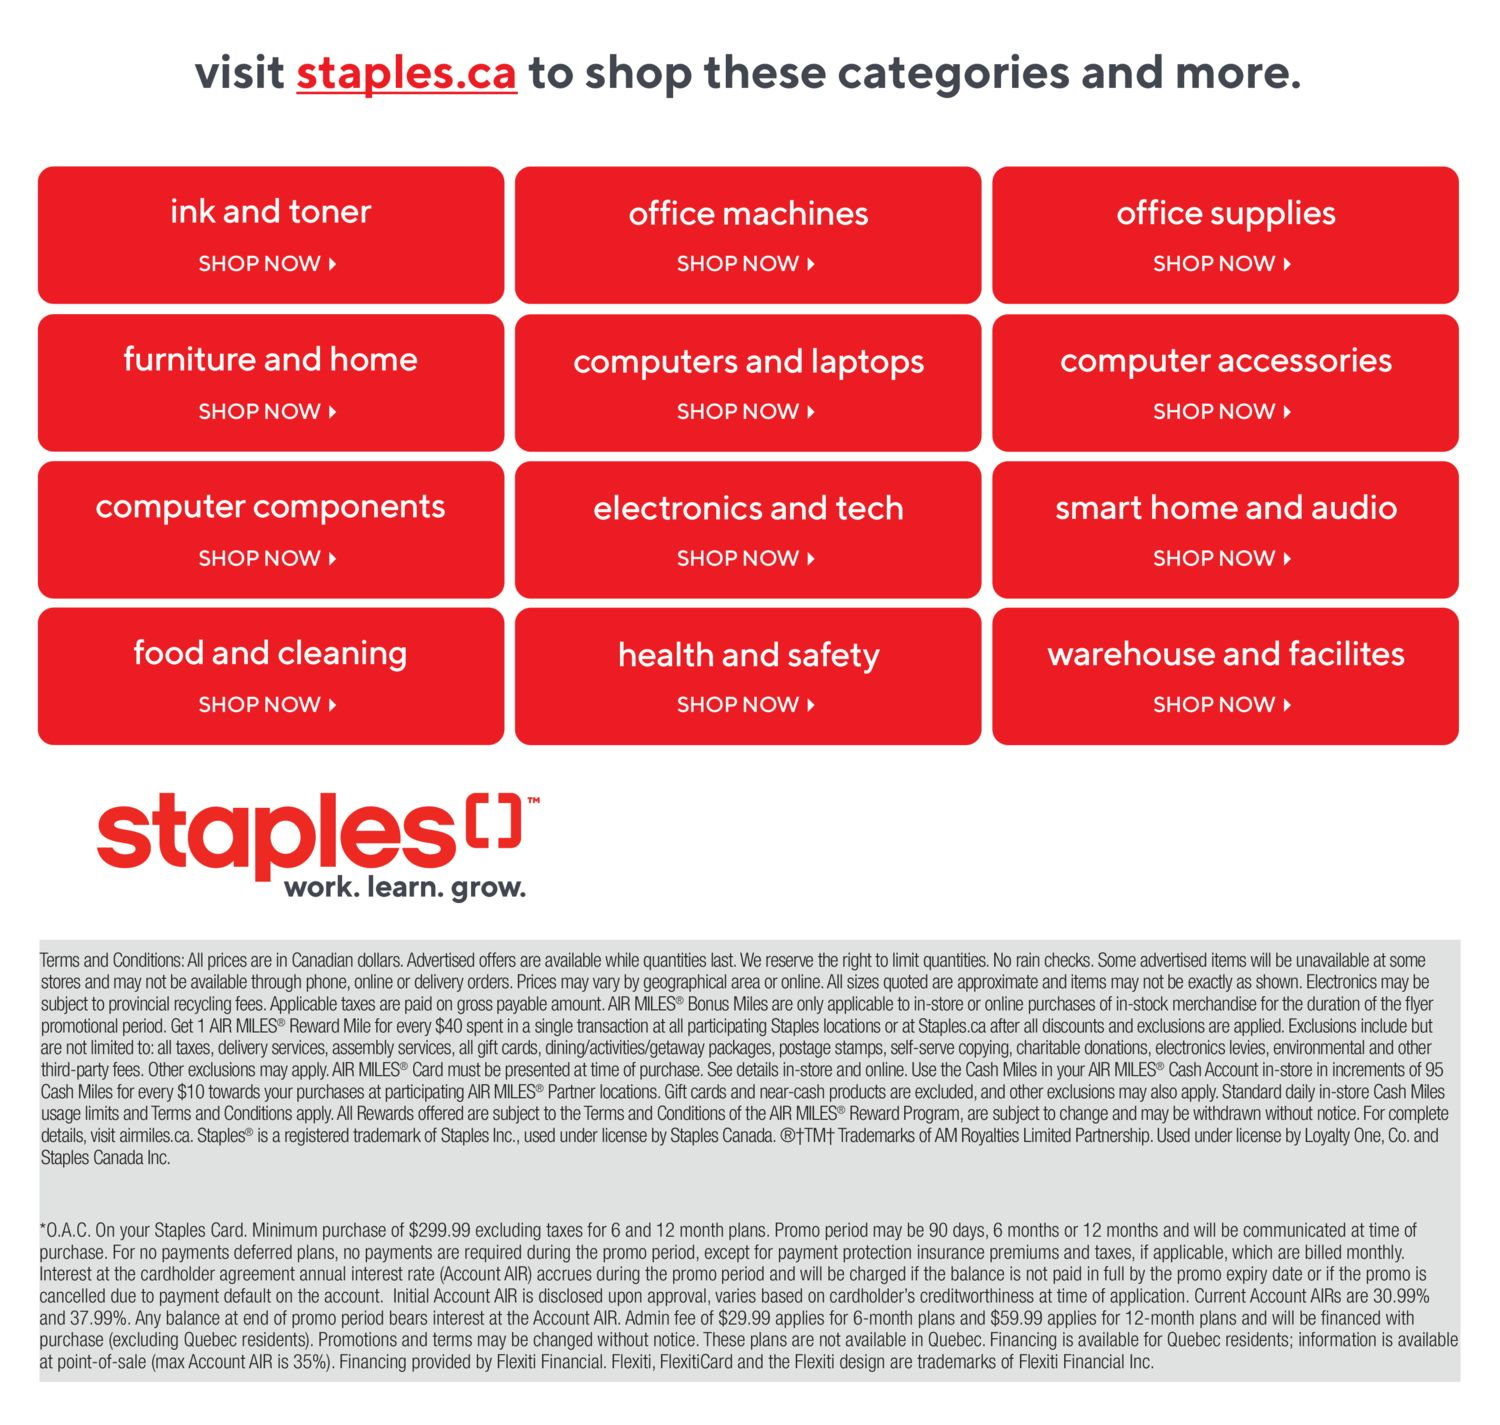 Staples - Weekly Flyer Specials - Page 11